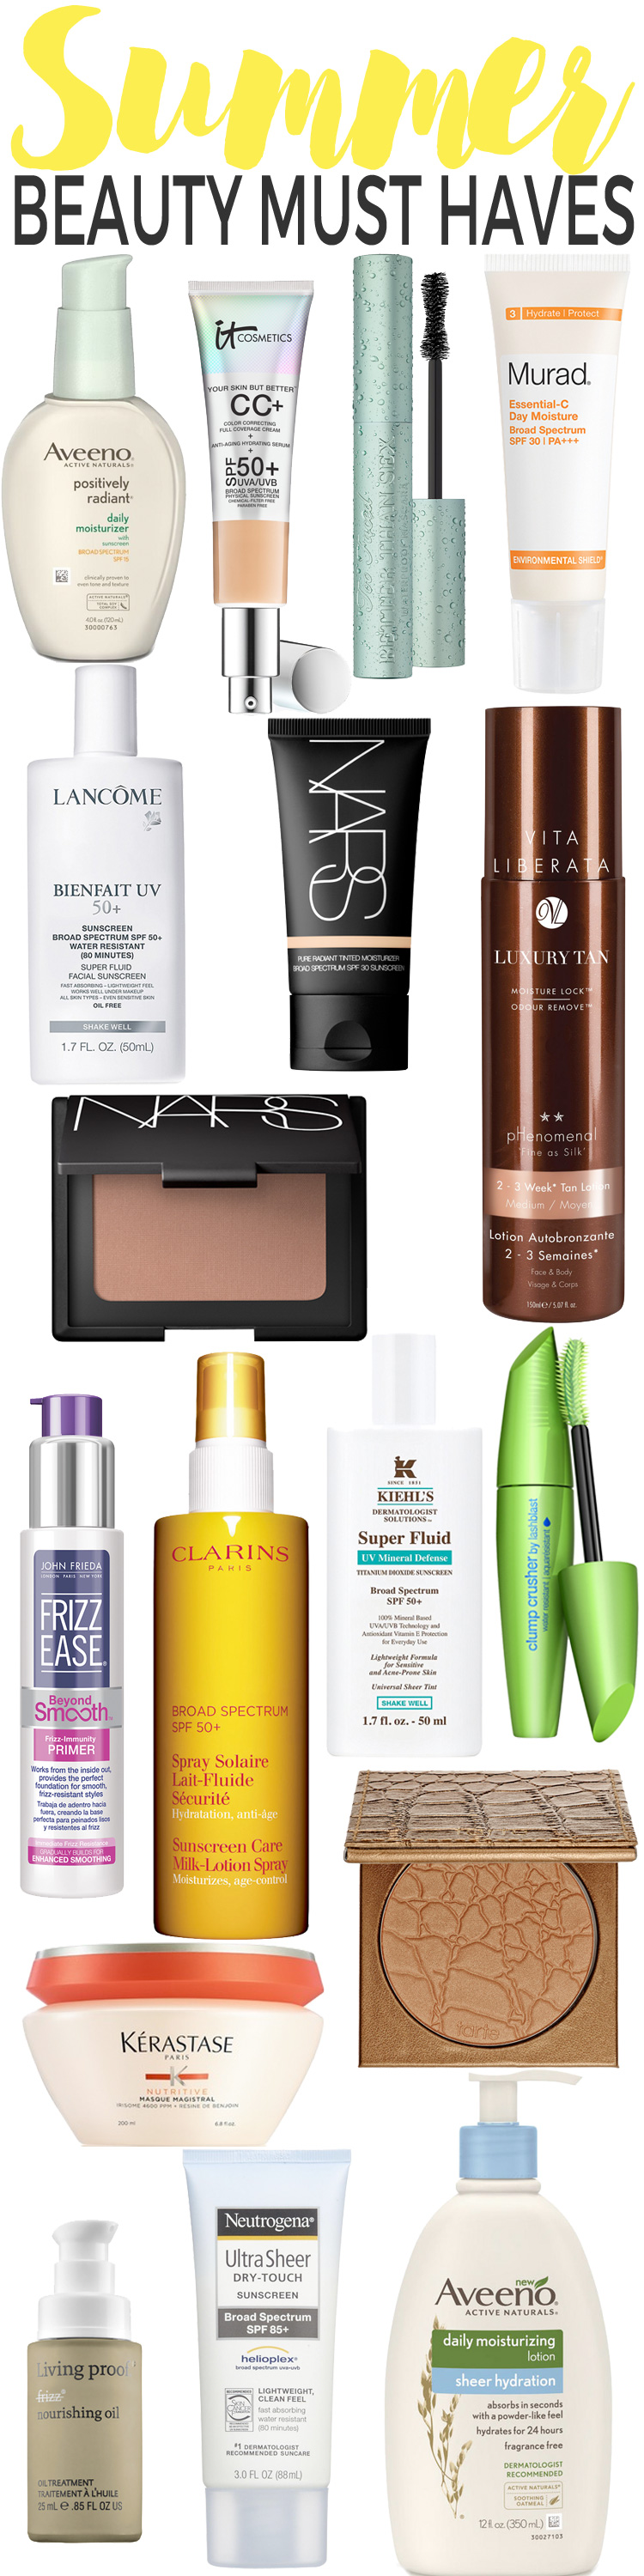 Summer Beauty Must Haves: Stock your makeup bag and beauty cabinet with these must-haves and be ready to take on summer at a moments notice!